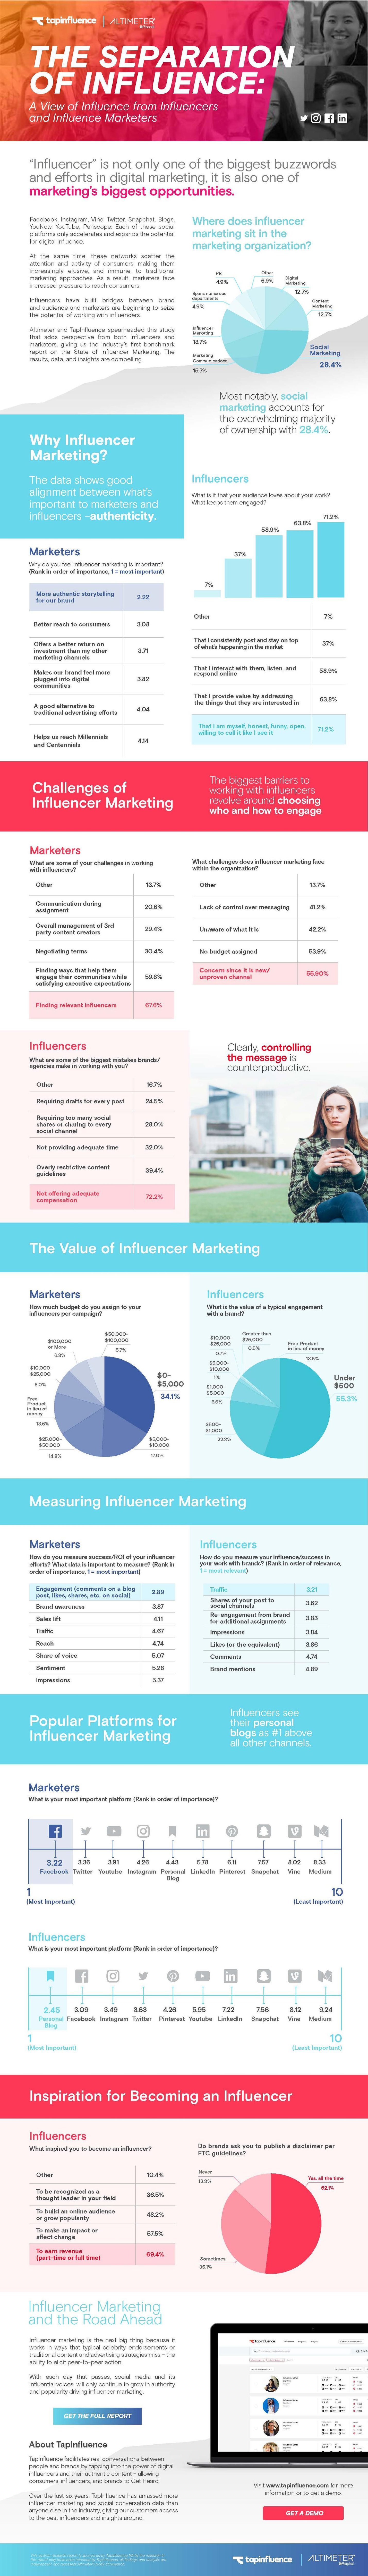 be841da687 50 Influencer Marketing Statistics, Quotes and Facts